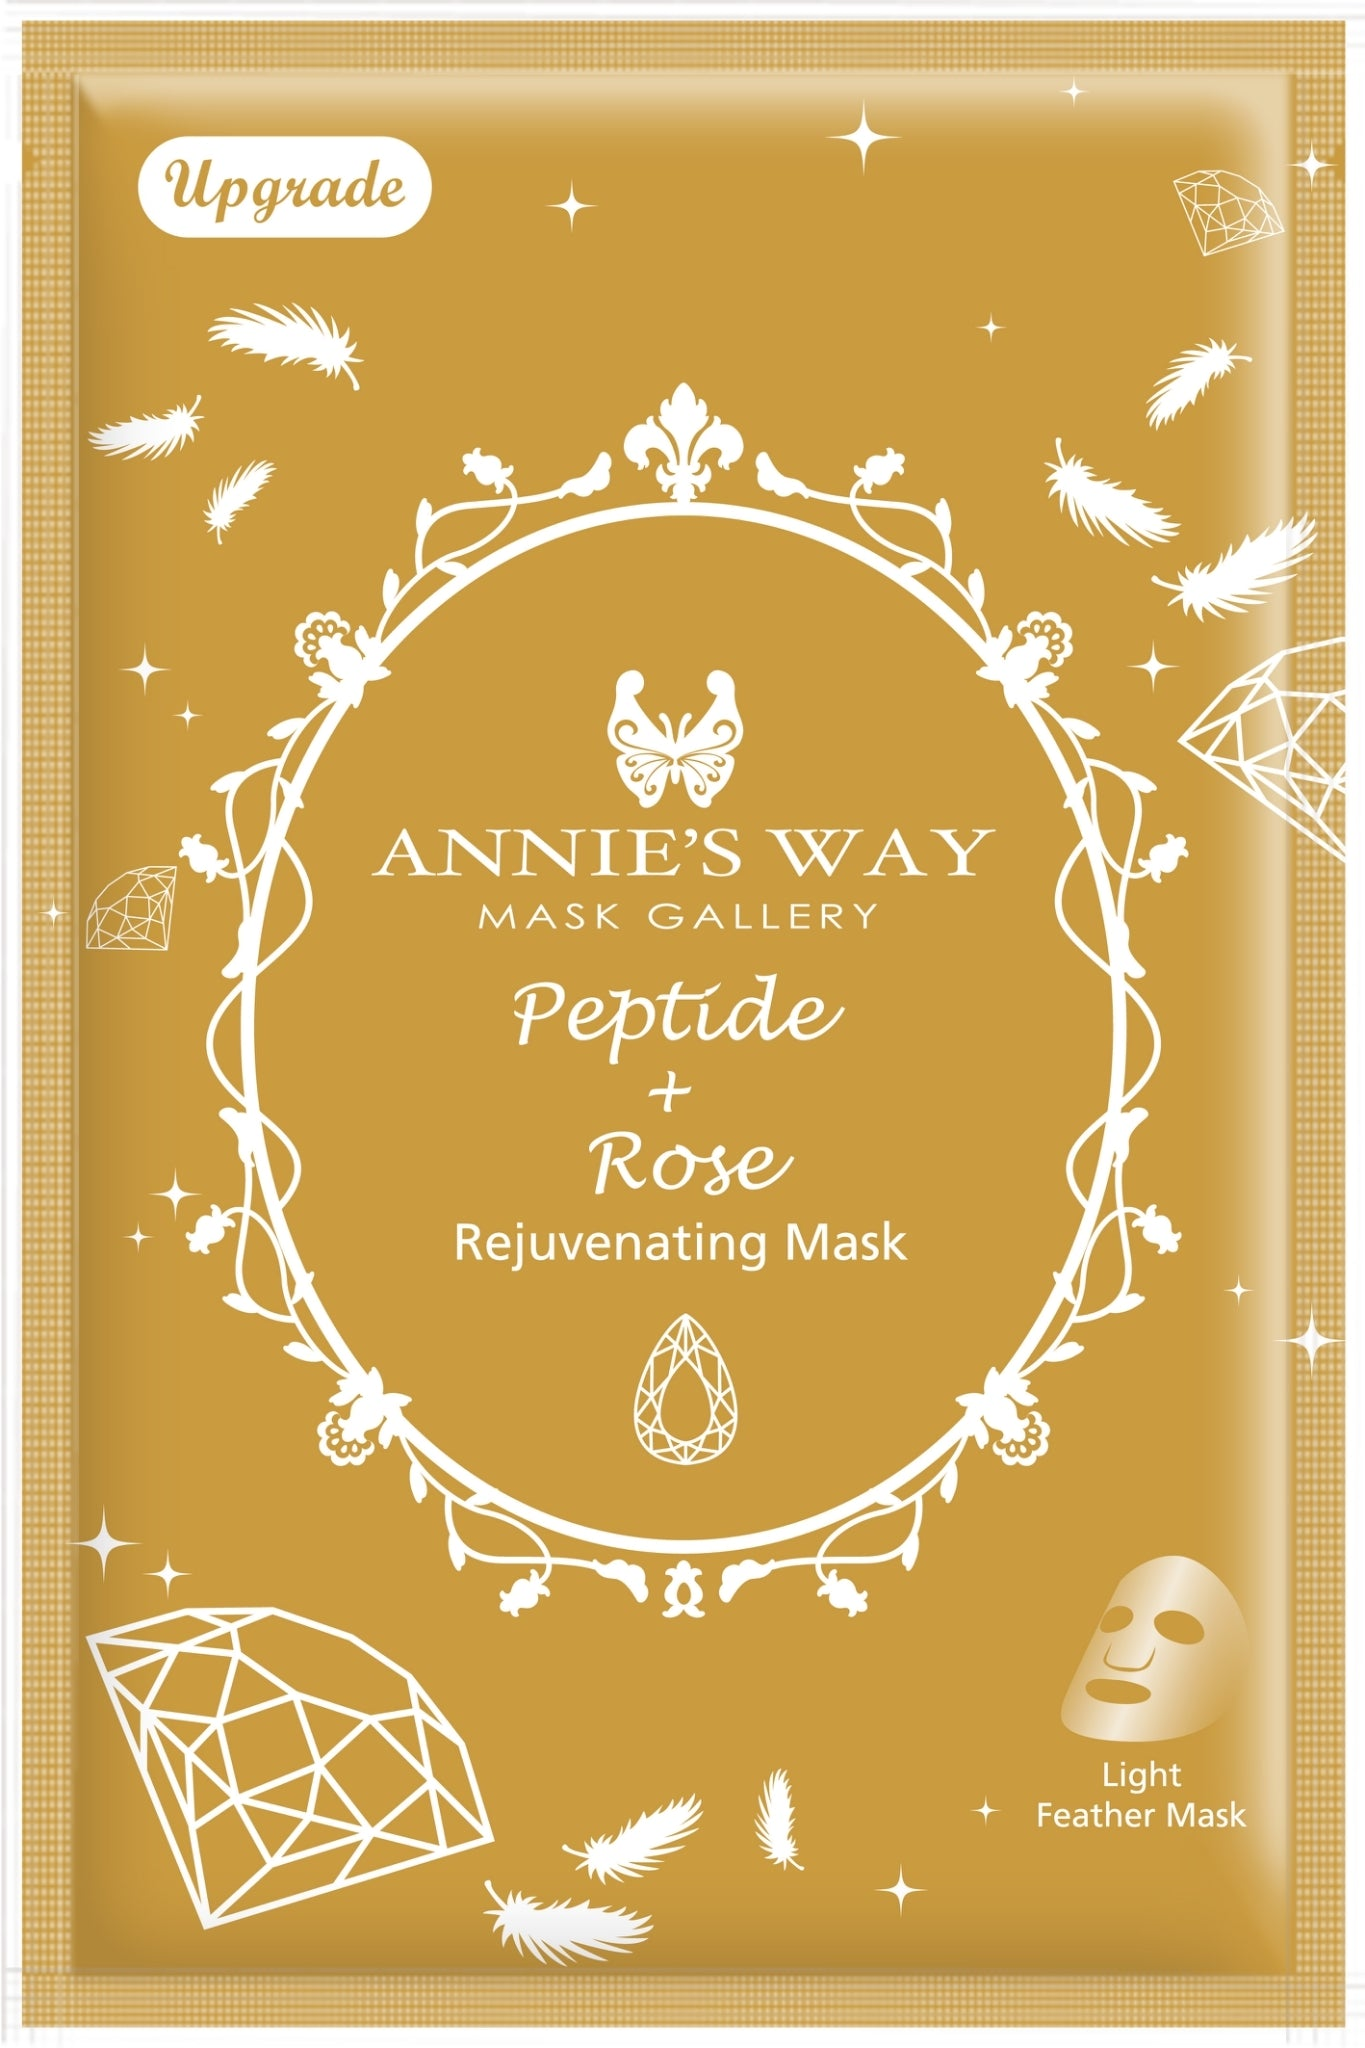 Annie's Way Peptide + Rose Rejuvenating Mask